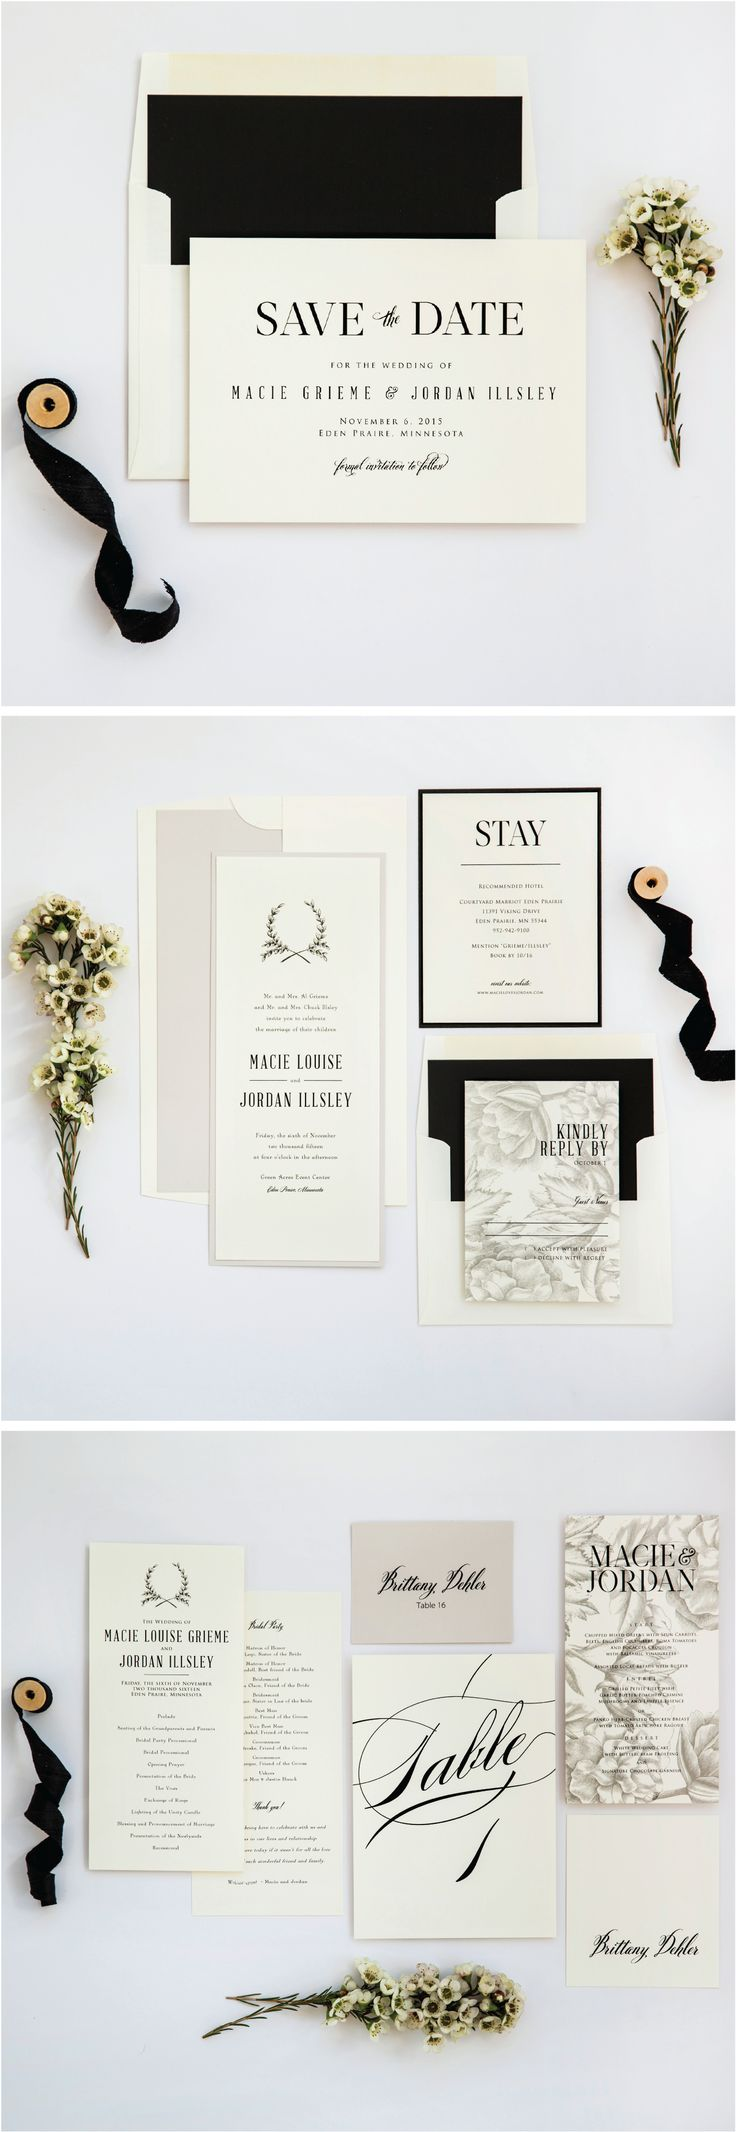 follow us signaturebride on twitter and on facebook signature bride magazine wedding stationery setsrustic